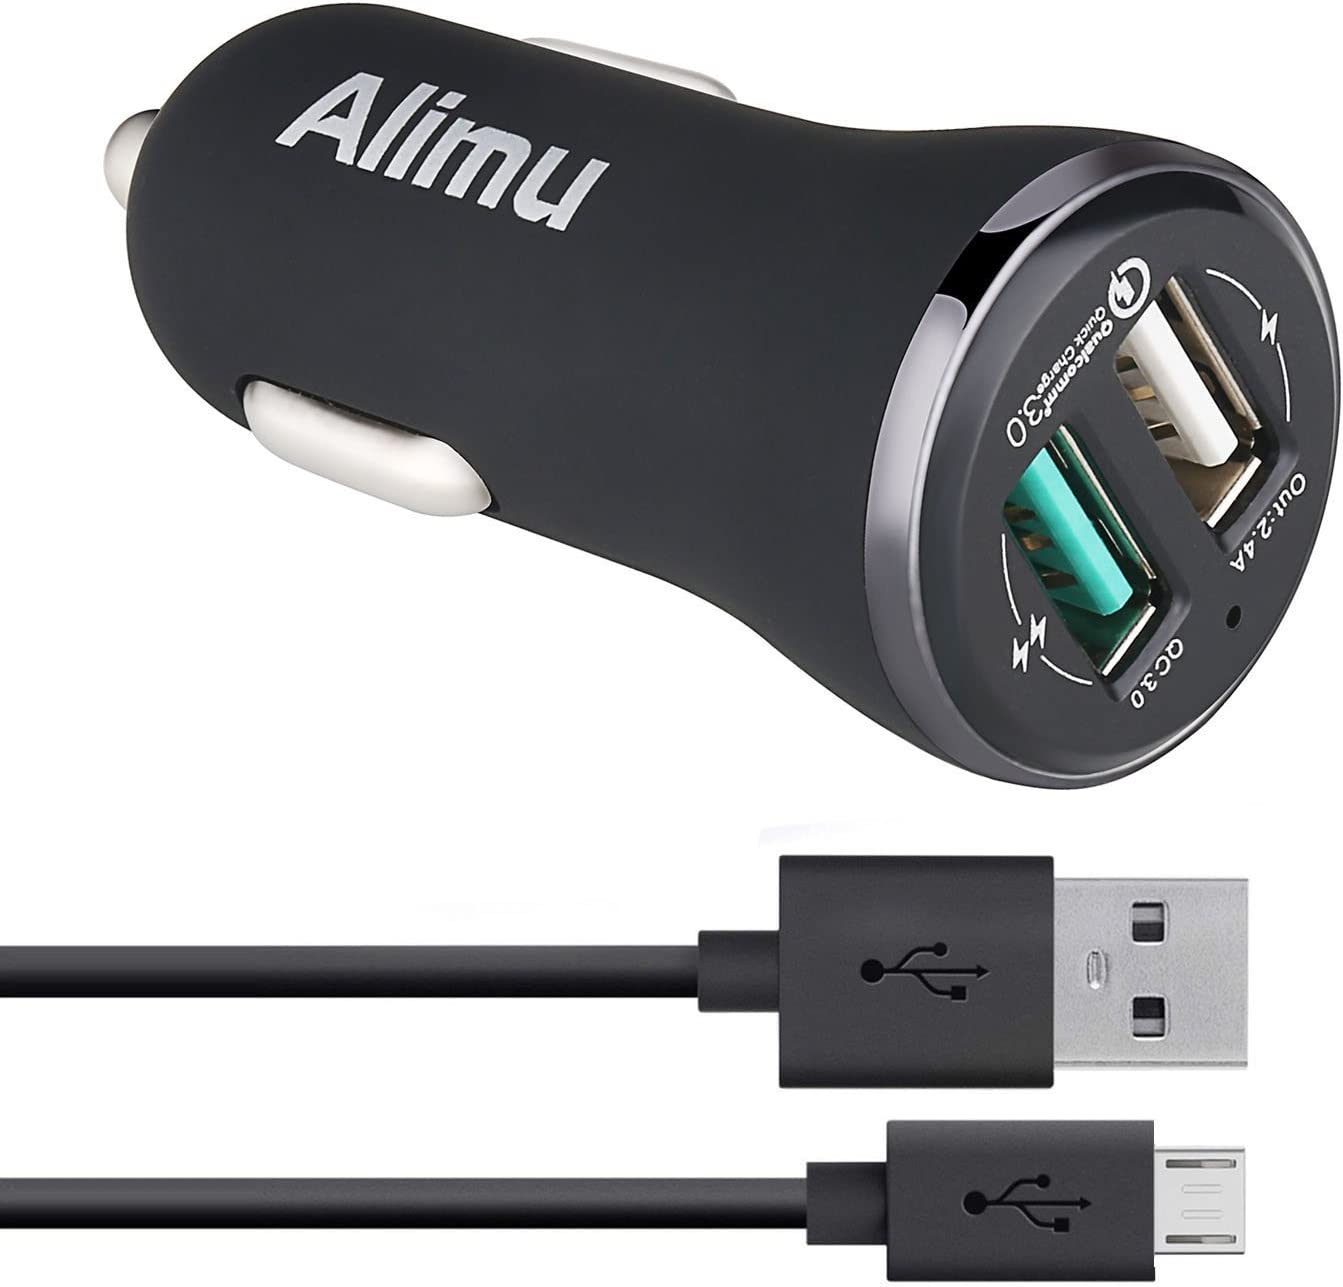 Samsung Galaxy S6 S7 Edge Plus Active Fast Car Charger,Alimu [Quick Charge 3.0] Rapid Charging Adapter for S6 S7,Note 5,HTC One M9 M8 A9,LG V10 G4,Sony,Moto,ASUS Phone with Micro-USB Cable